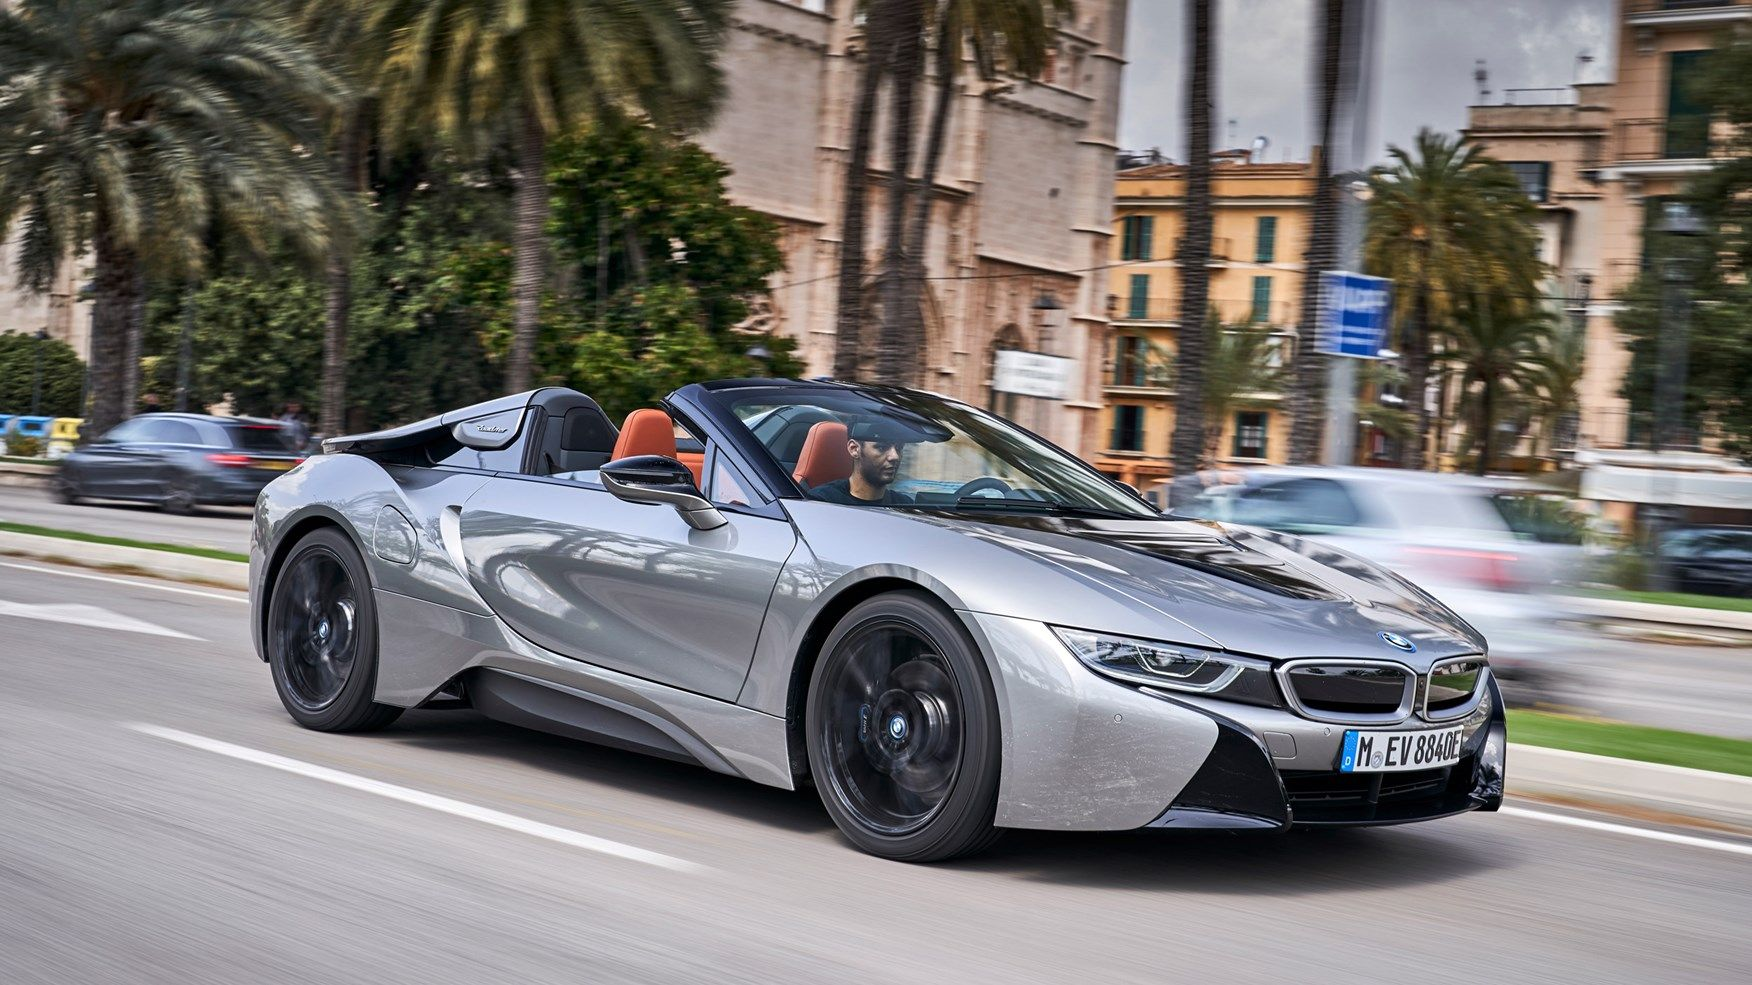 New Bmw I8 Roadster Review 2018 Hybrid Loses A Roof But Gains Much More By Car Magazine Best Hybrid Cars Hybrid Car Luxury Hybrid Cars